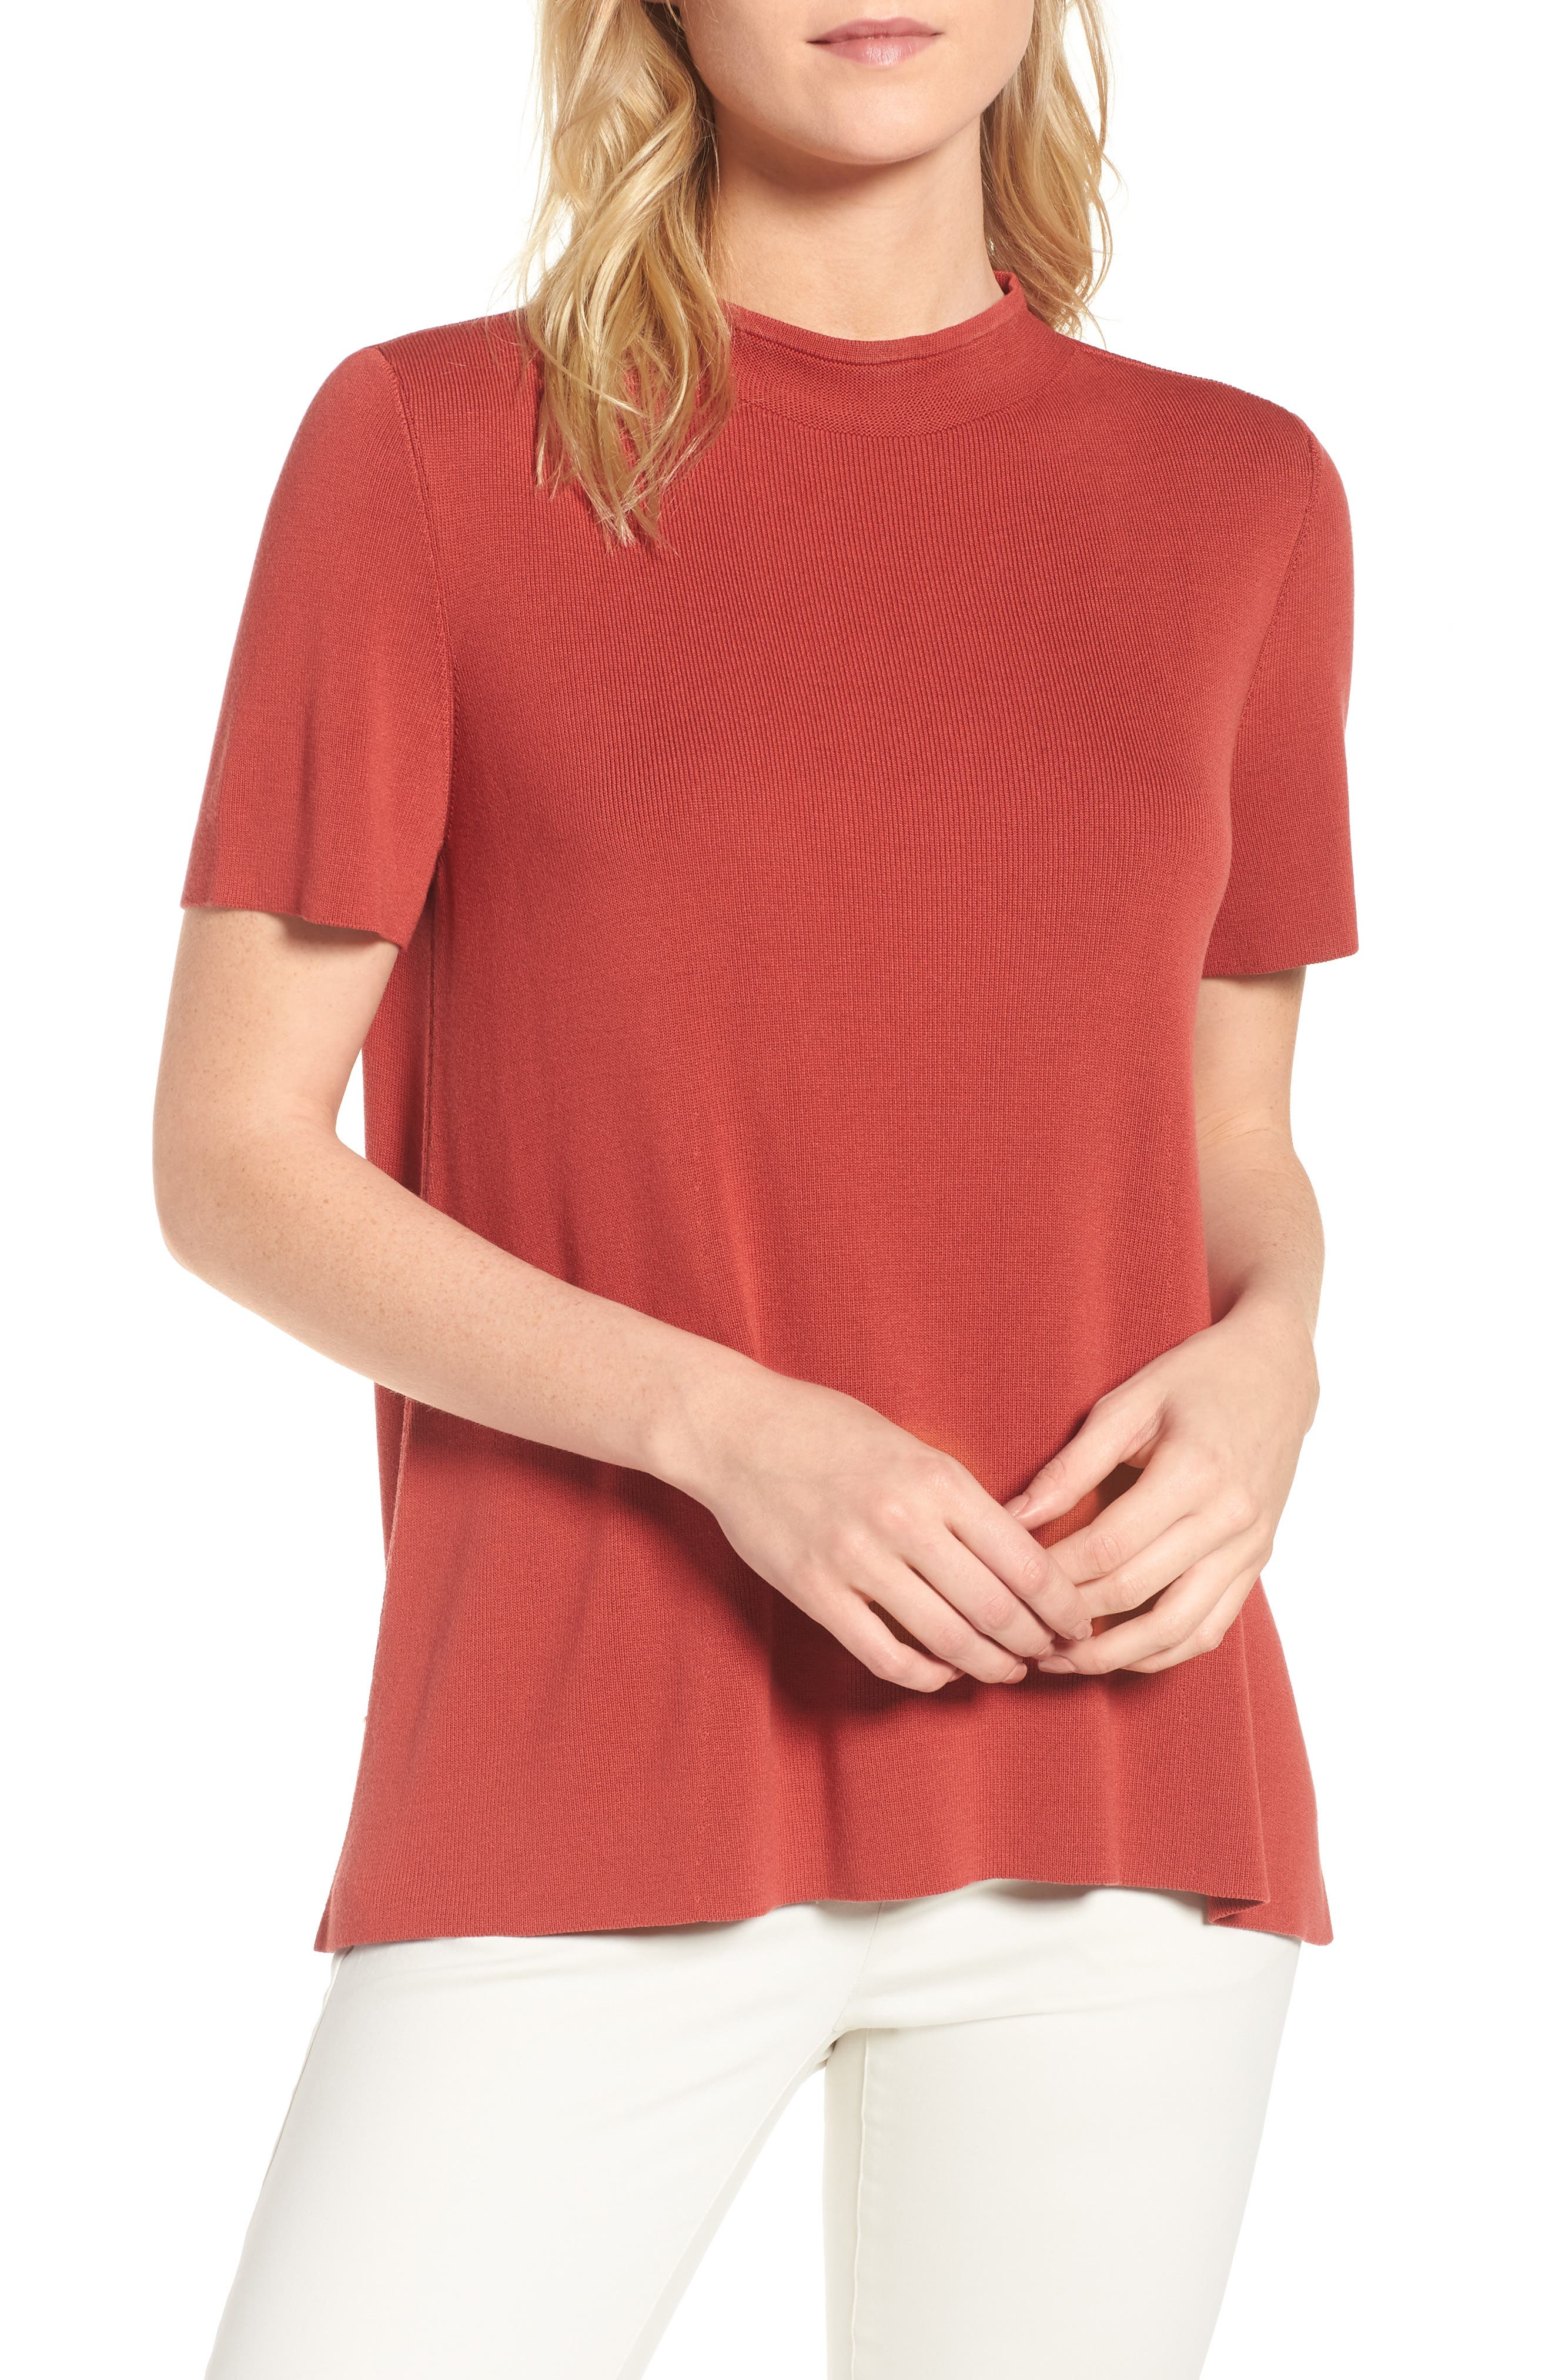 Tencel<sup>®</sup> Lyocell Knit Sweater,                         Main,                         color, Coral Rose